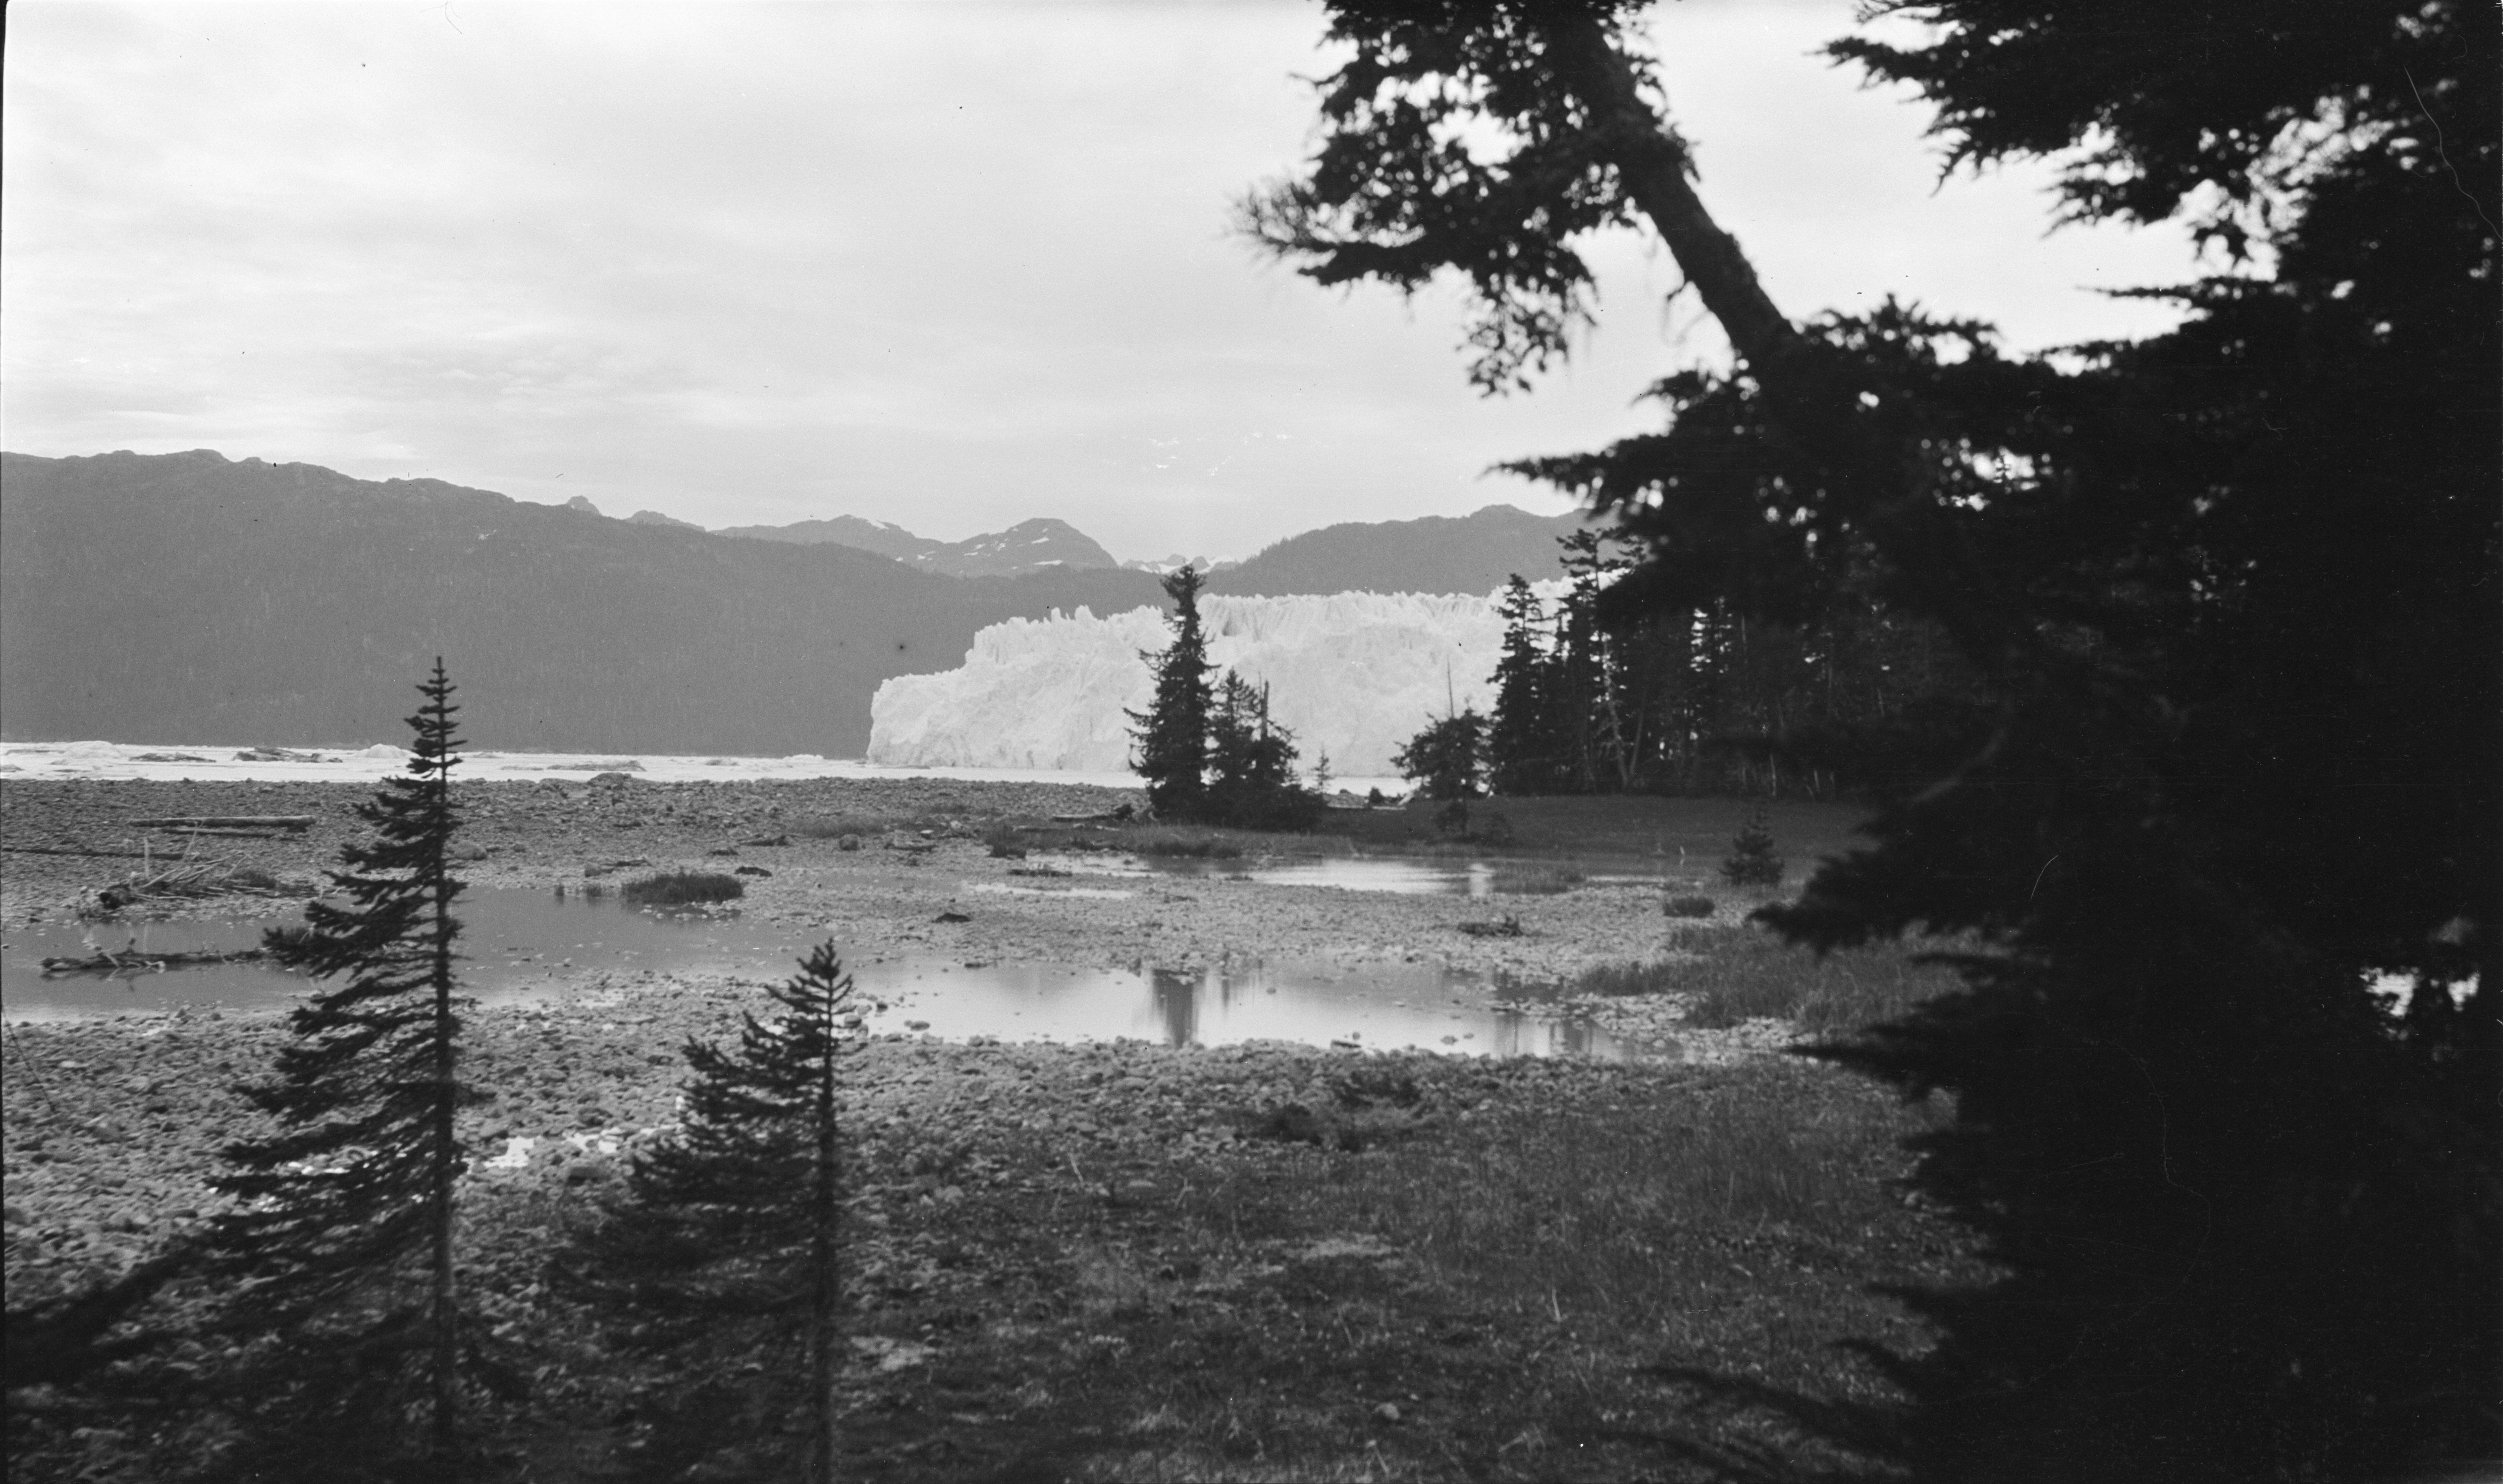 Columbia Glacier from one of Curtis sites. 1909. Prince William Sound, Valdez-Cordova, Alaska. Image provided by Cornell University.